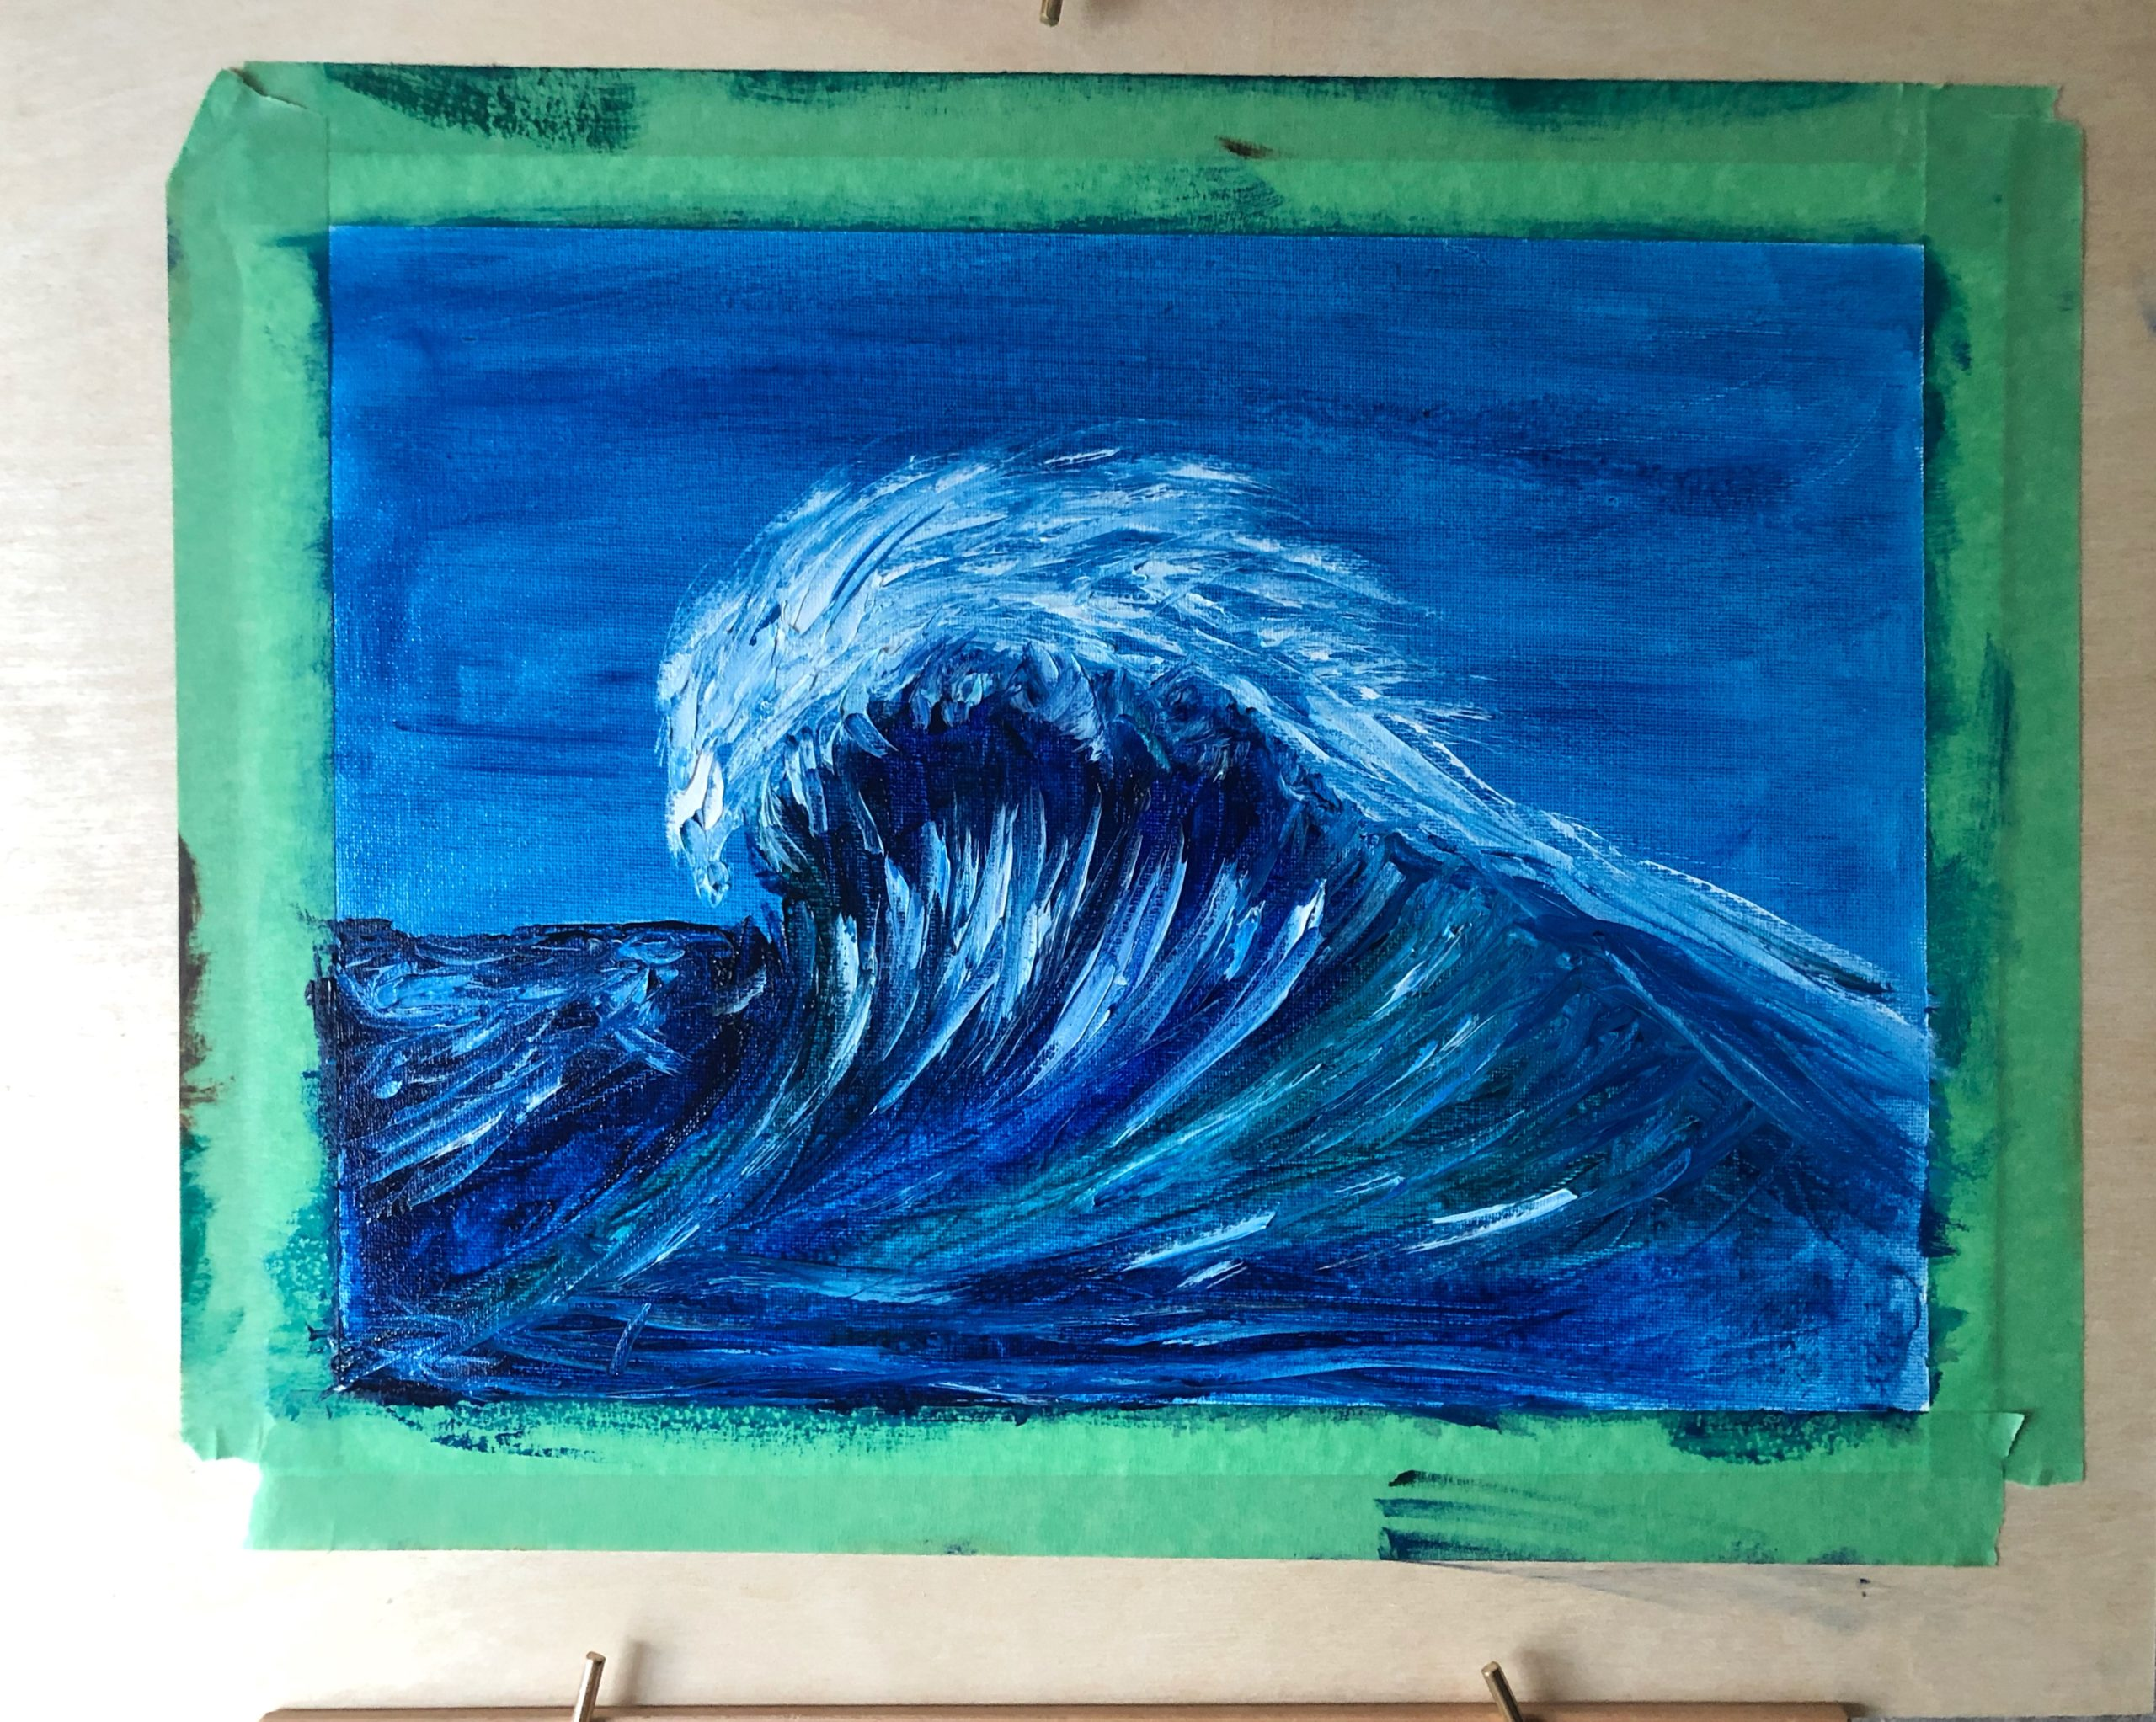 An oil painting of a wave